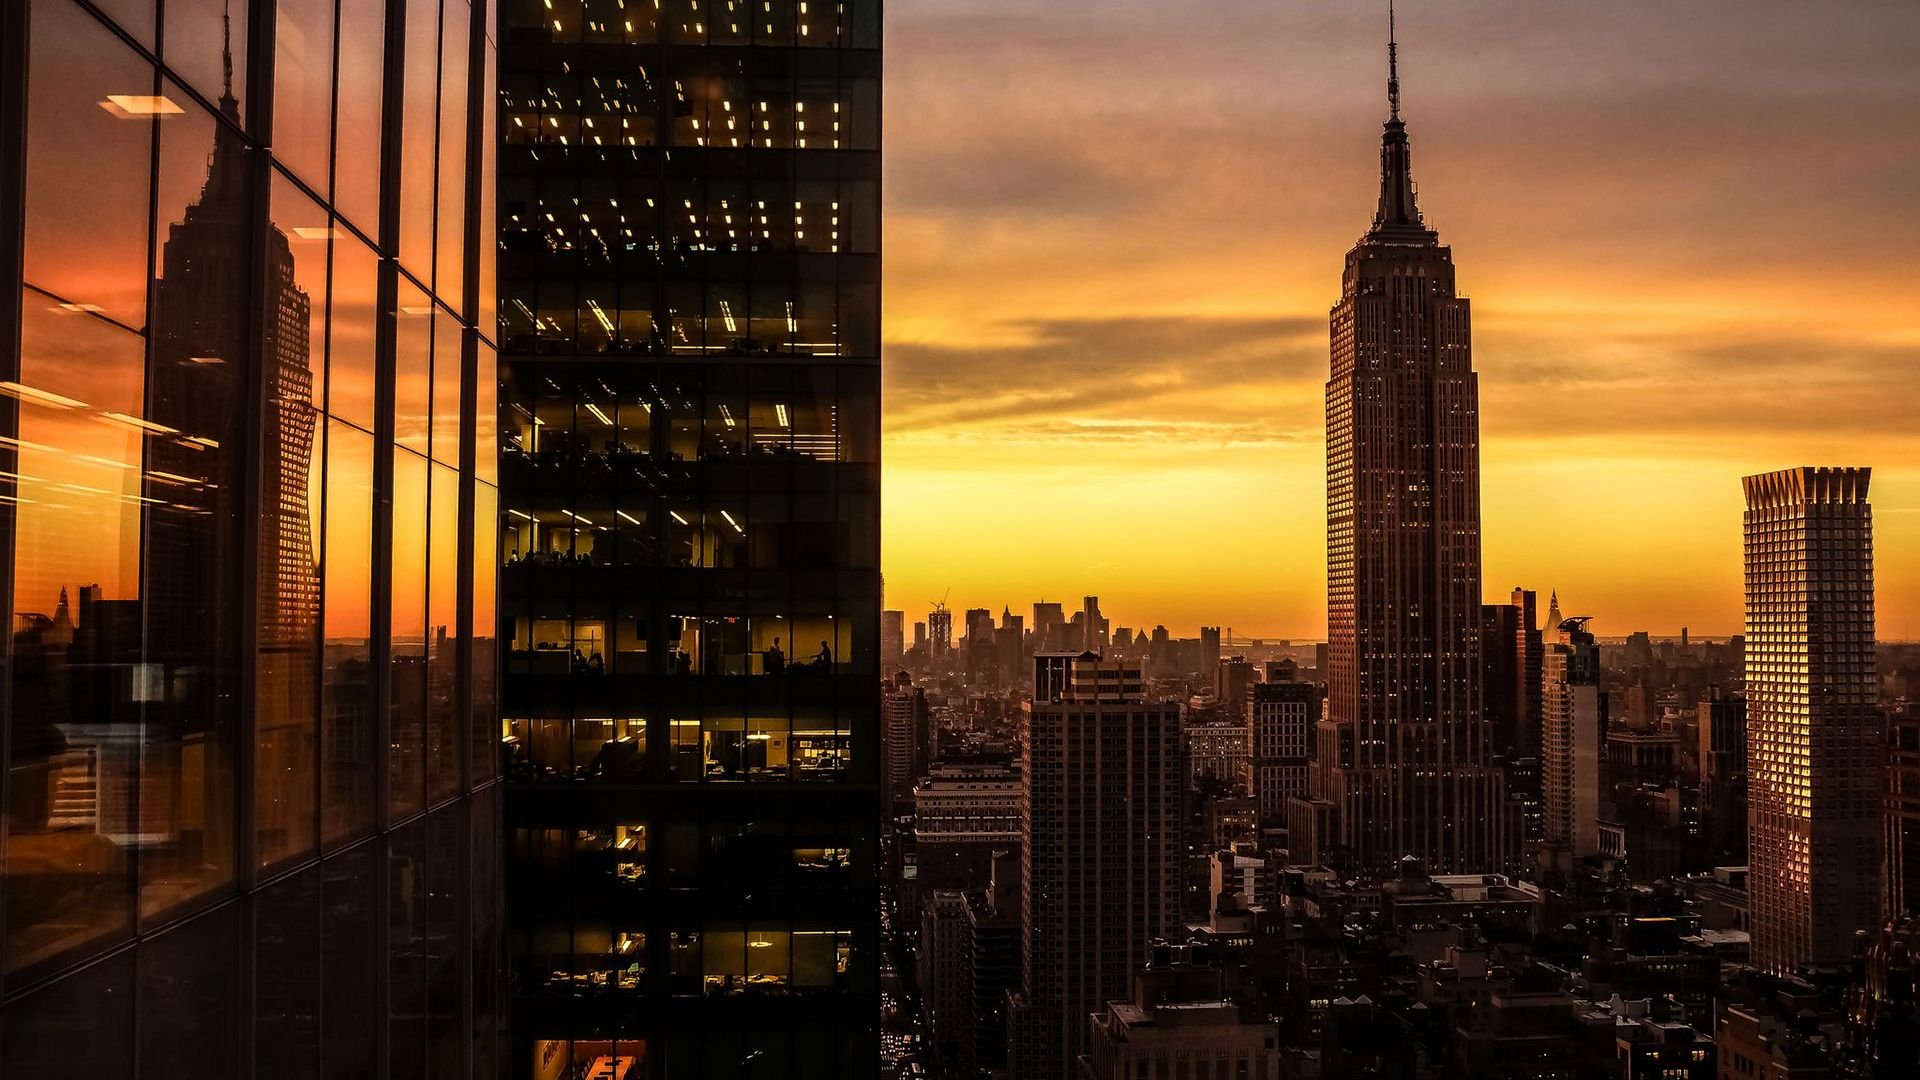 new york city new york empire state building resolution 1920x1200 date 1920x1080